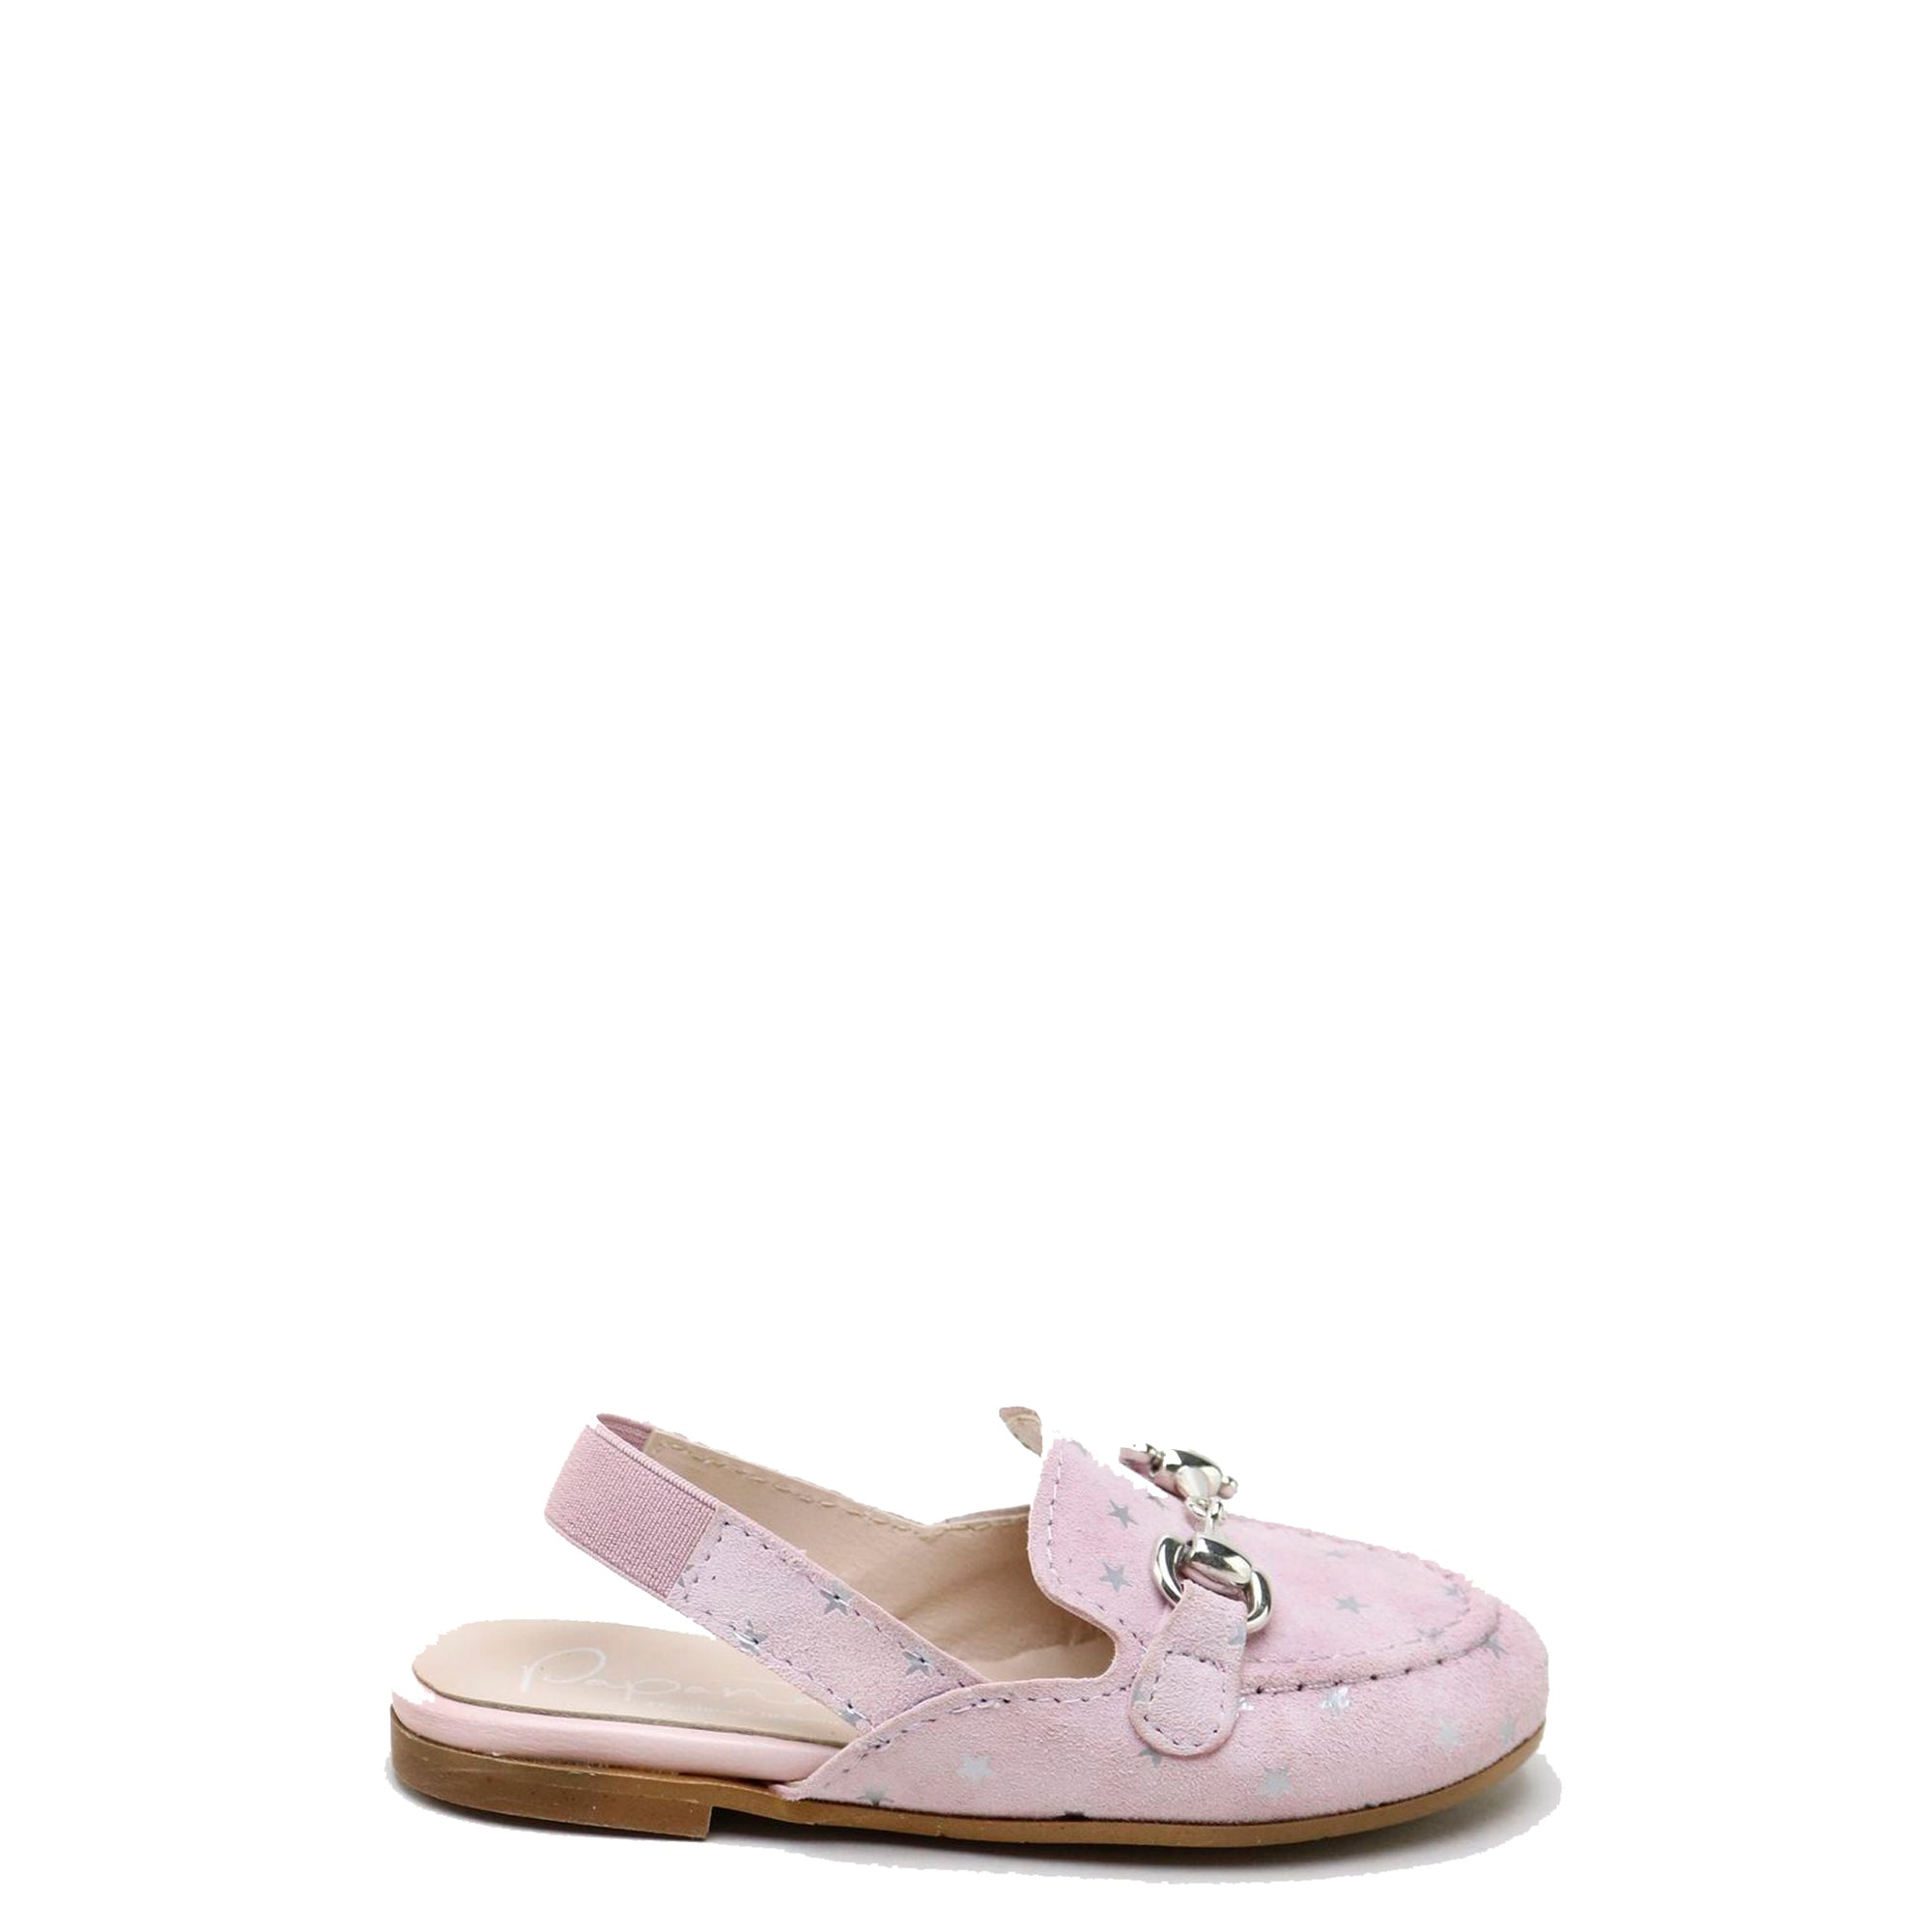 Papanatas Pink and Silver Star Mule-Tassel Children Shoes